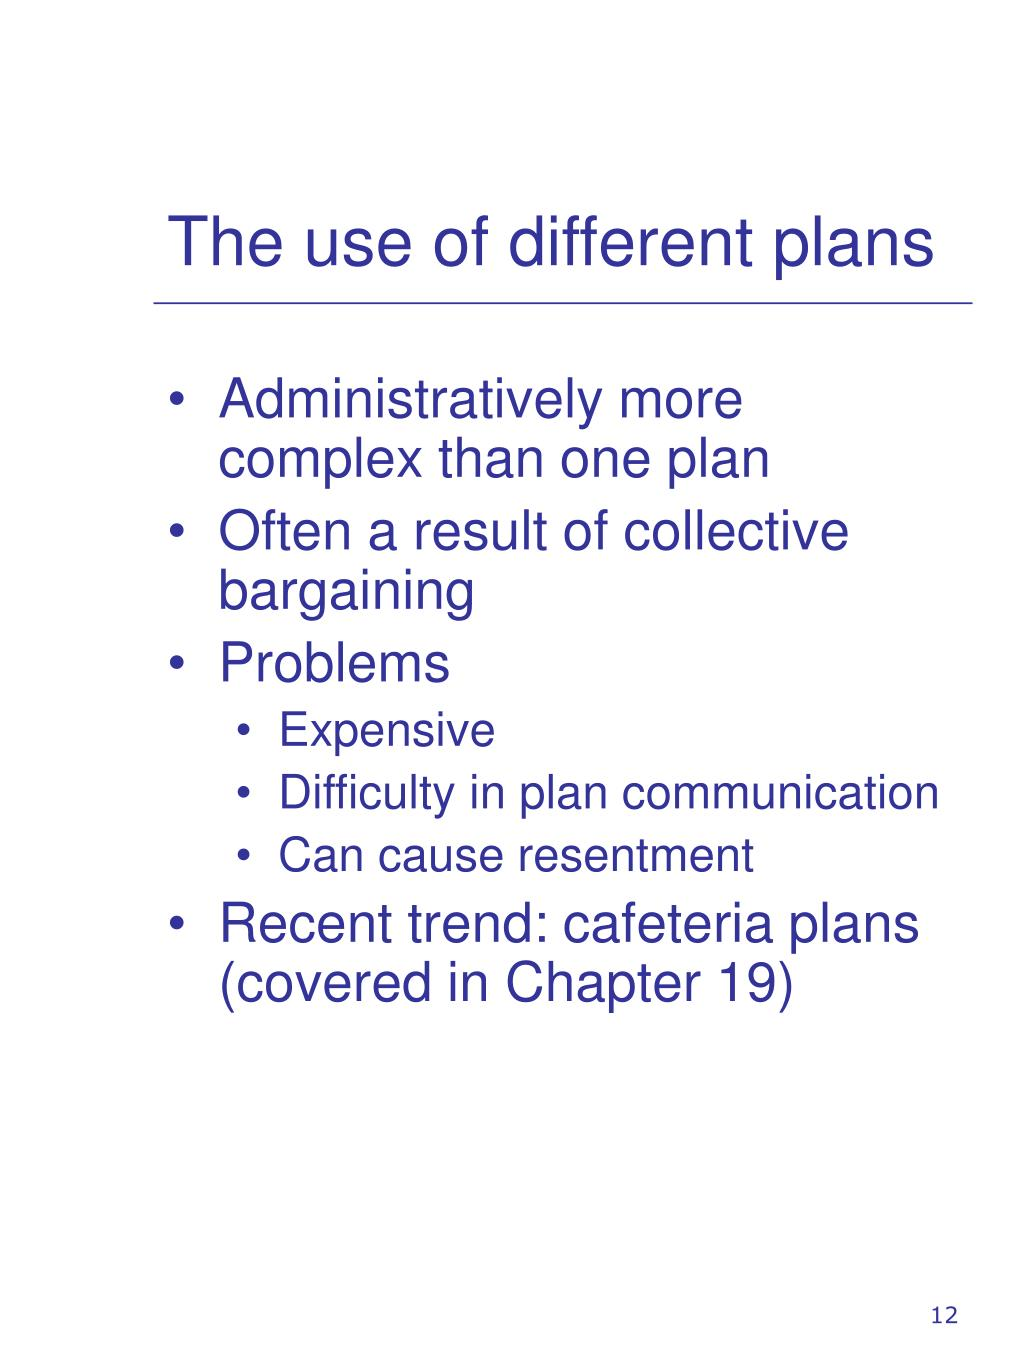 The use of different plans